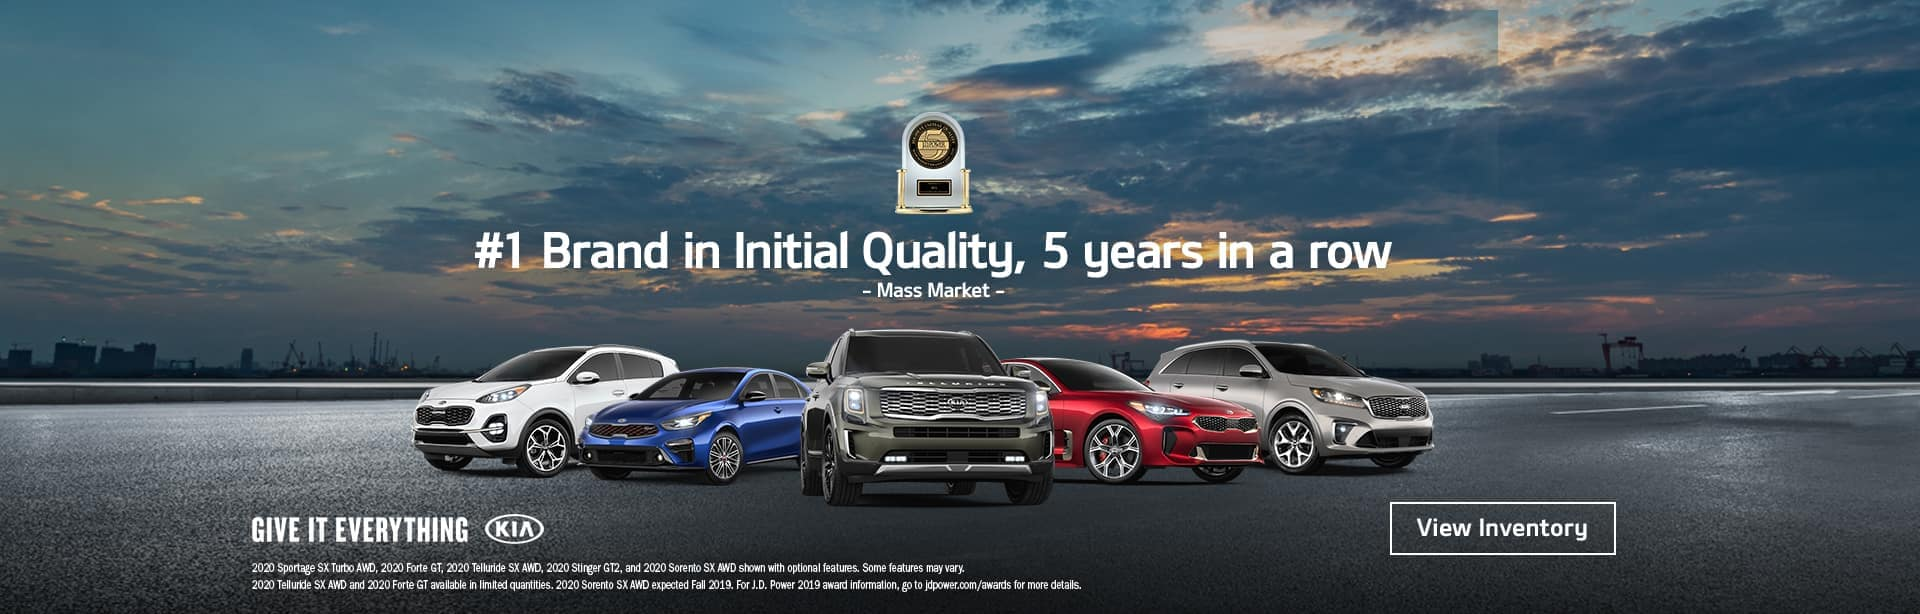 #1 brand in initial quality, 5 years in a row.